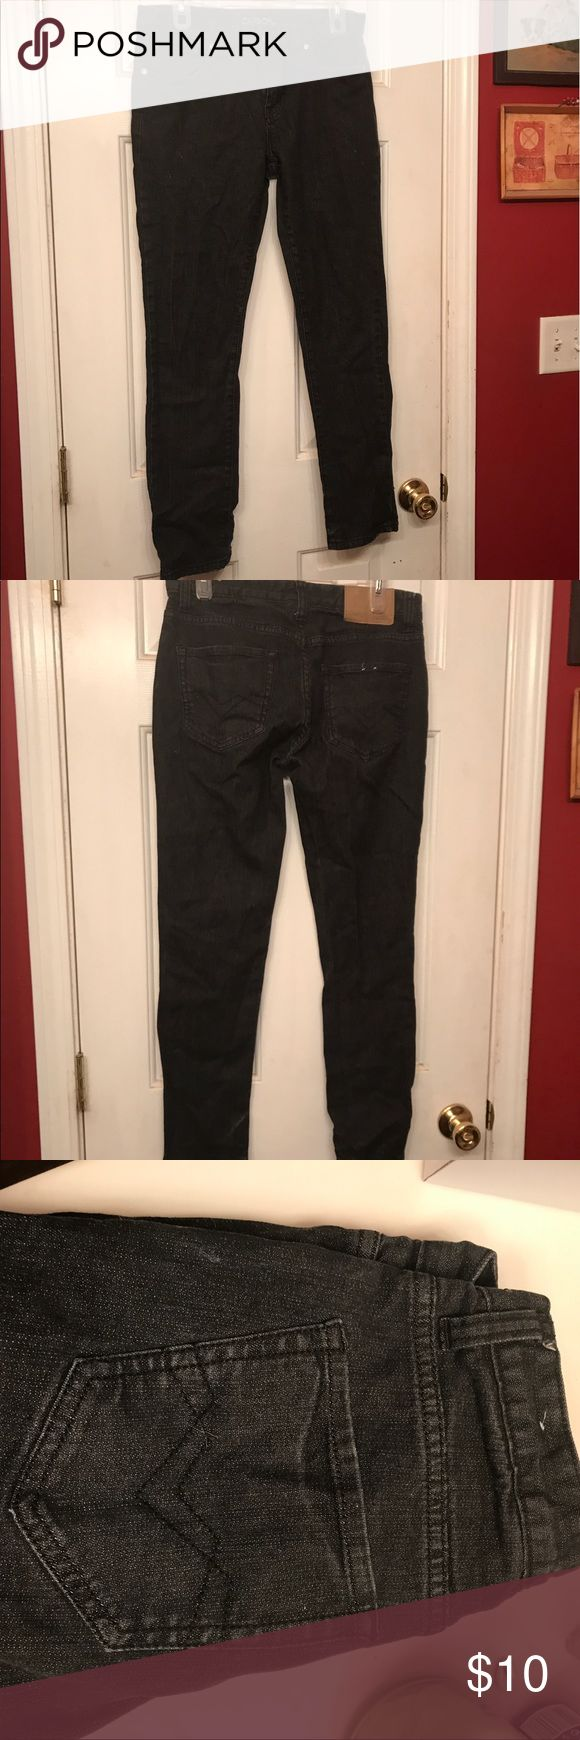 Men's black Carbon jeans size 30/30 End black Carbon jeans size 30/30. Non smoking home. Very sharp looking on. Rue 21 Jeans Relaxed